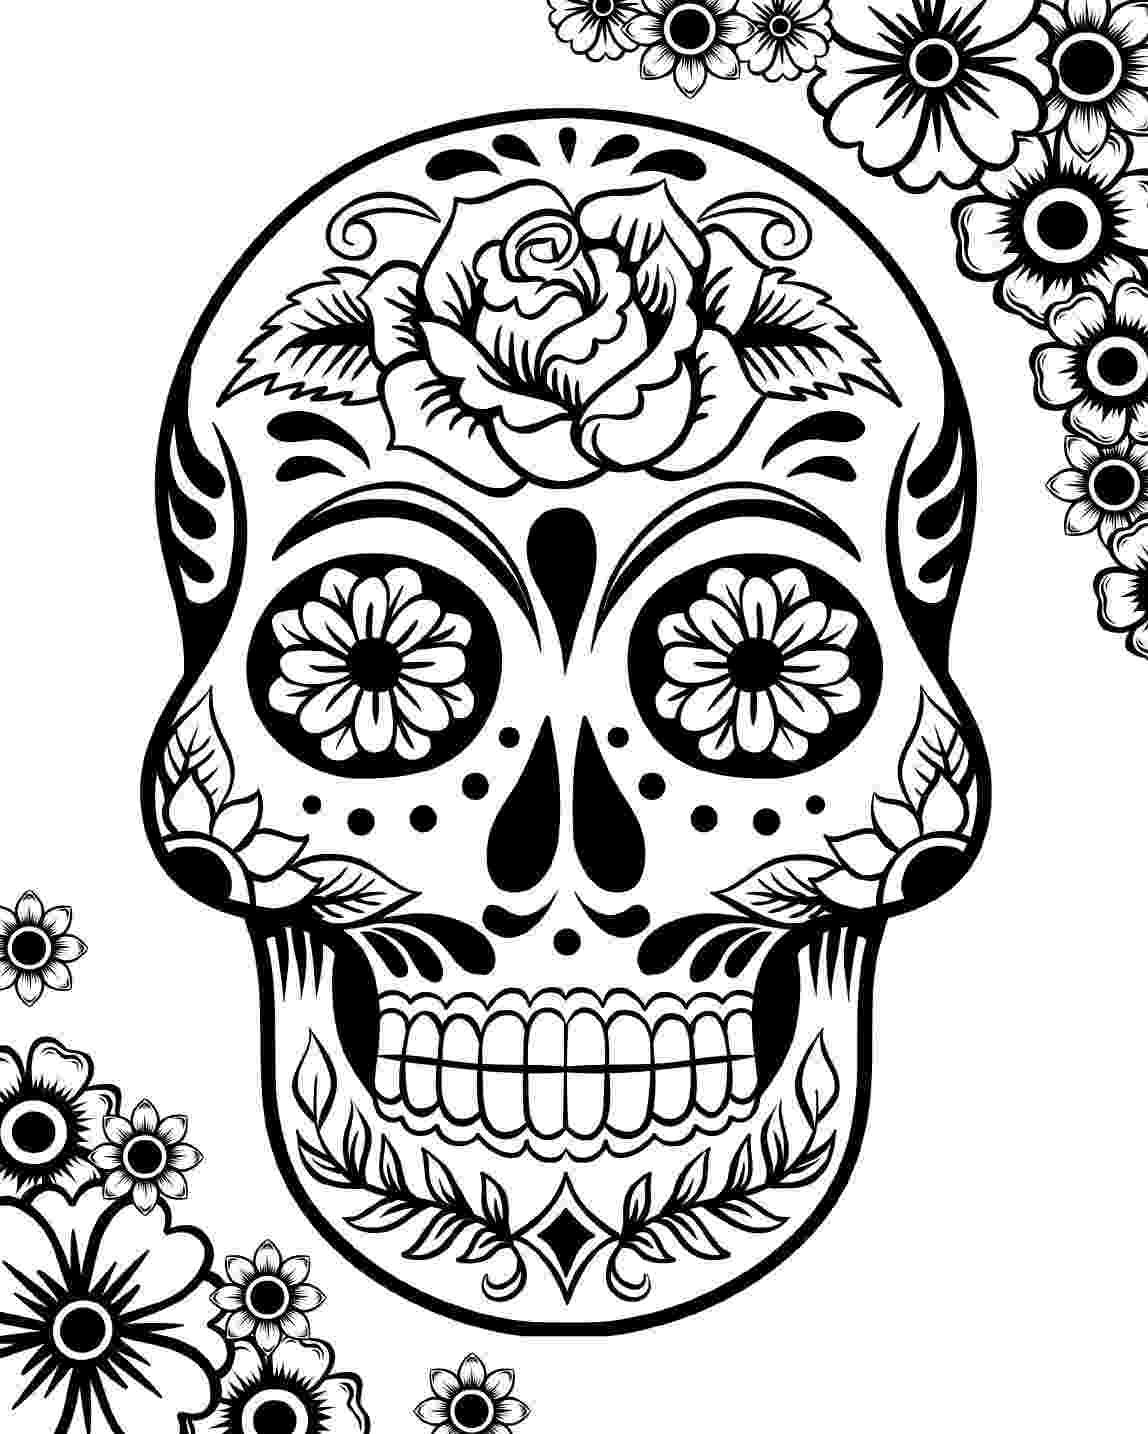 day of the dead coloring skulls free printable day of the dead coloring pages best dead of skulls coloring day the